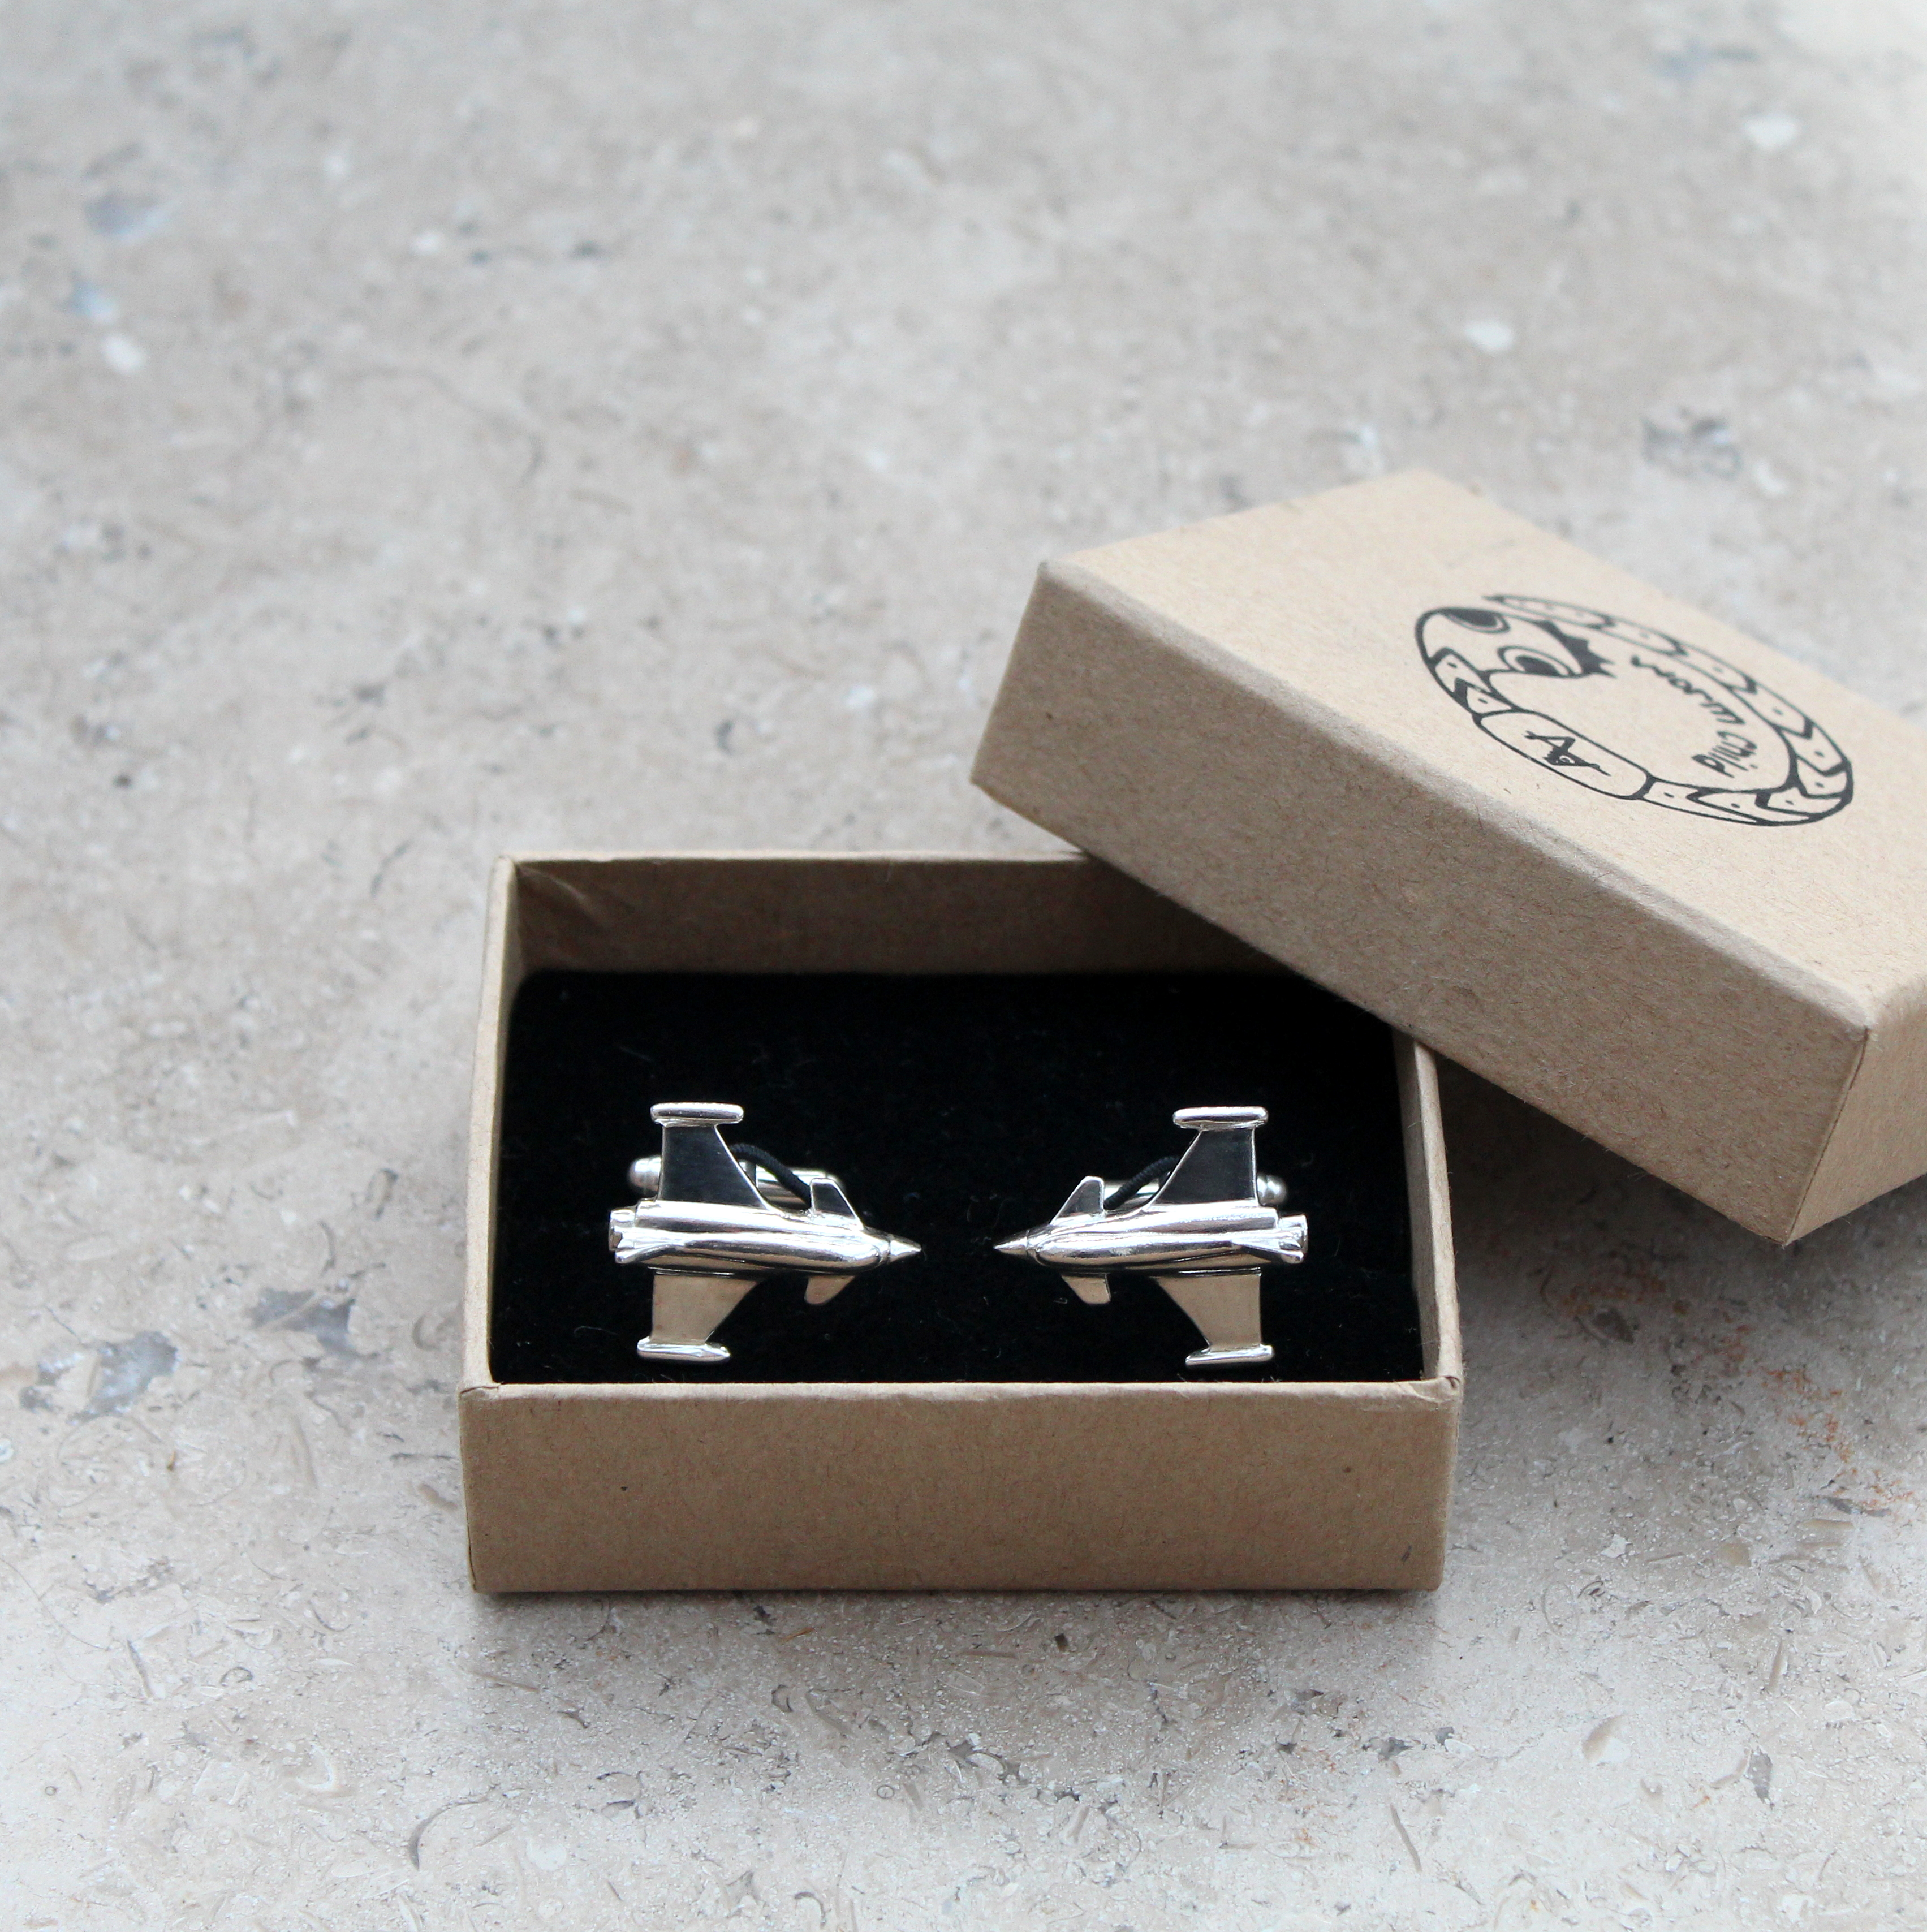 Typhoon Plane Cufflinks